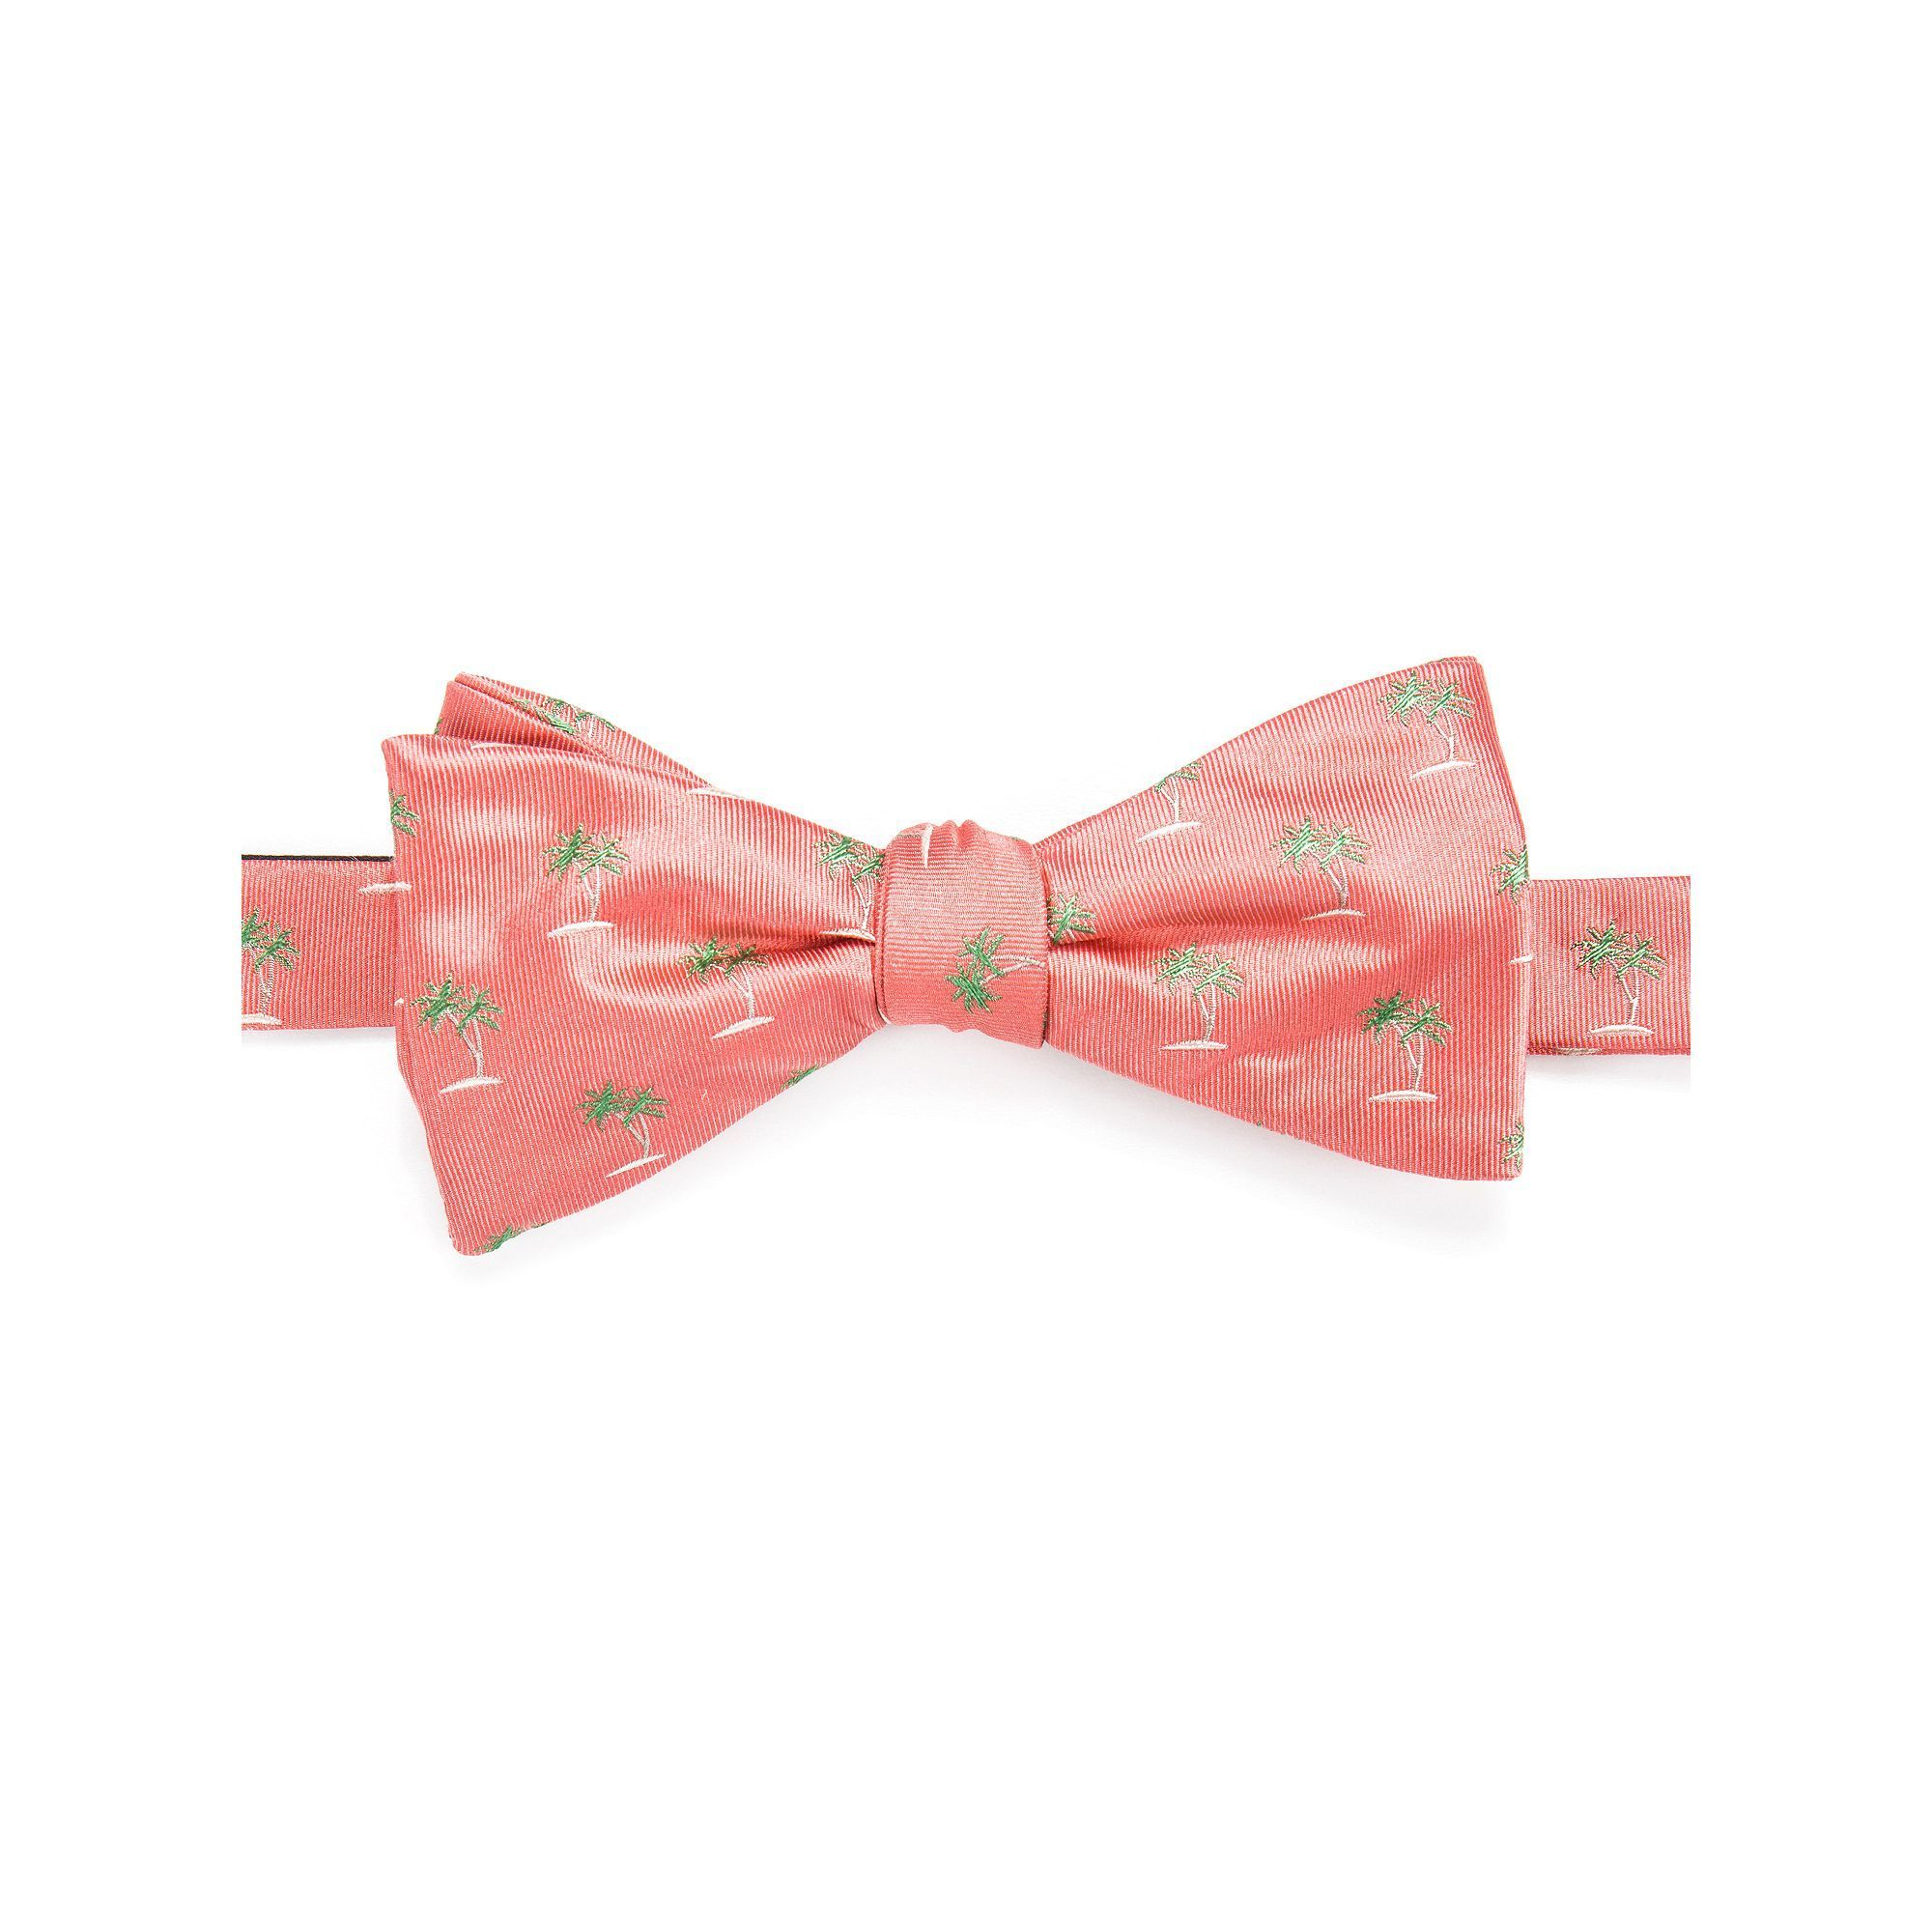 8eb8ead8965e Chaps Men's Patterned Pre-Tied Bow Tie | Products | Tie, Bows, Dress ...